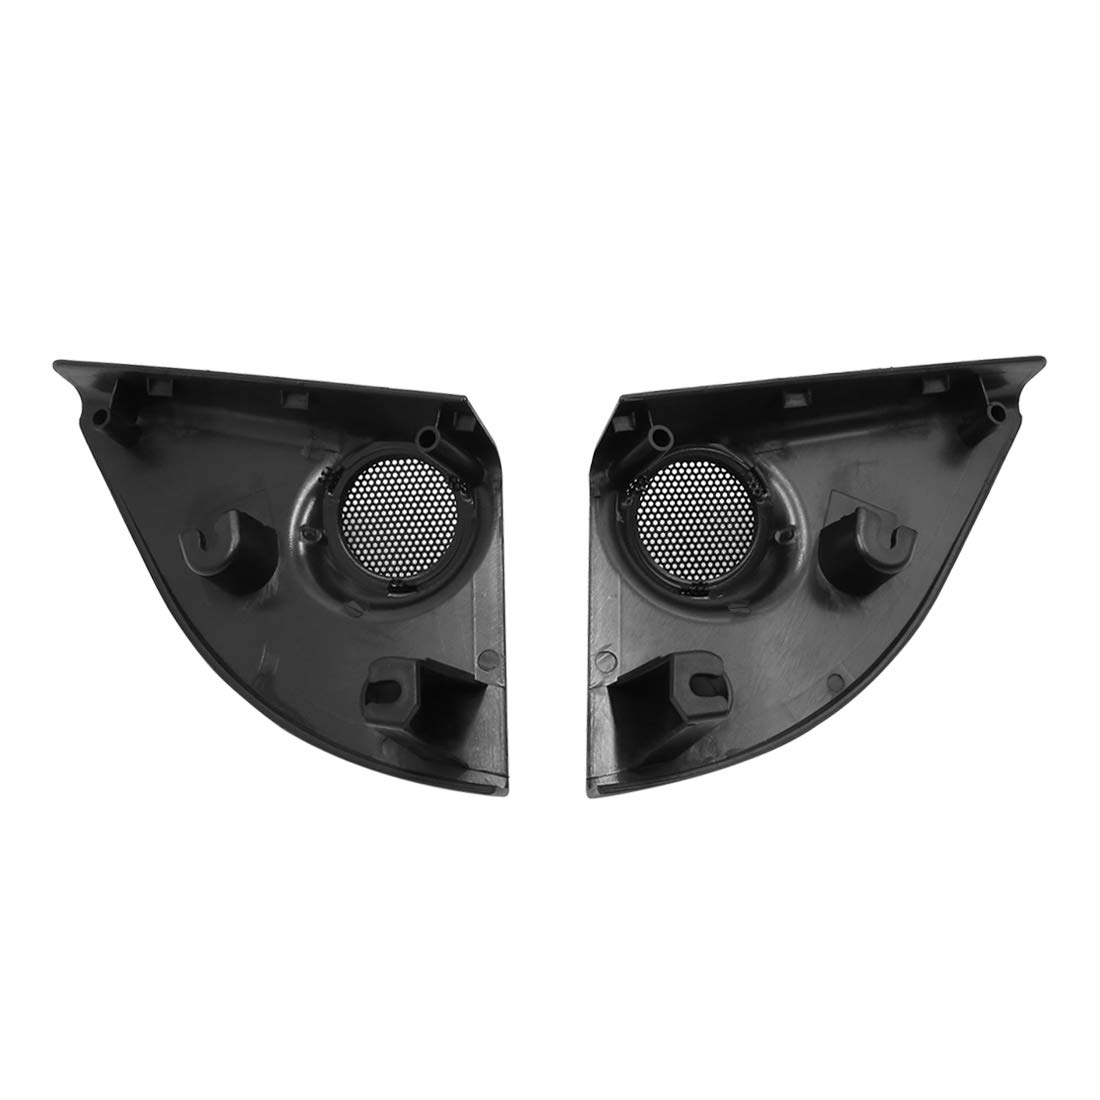 uxcell Pair Black Car Speaker Trim Cover Tweeter Protector for 2014-2017 Toyota RAV4 by uxcell (Image #3)